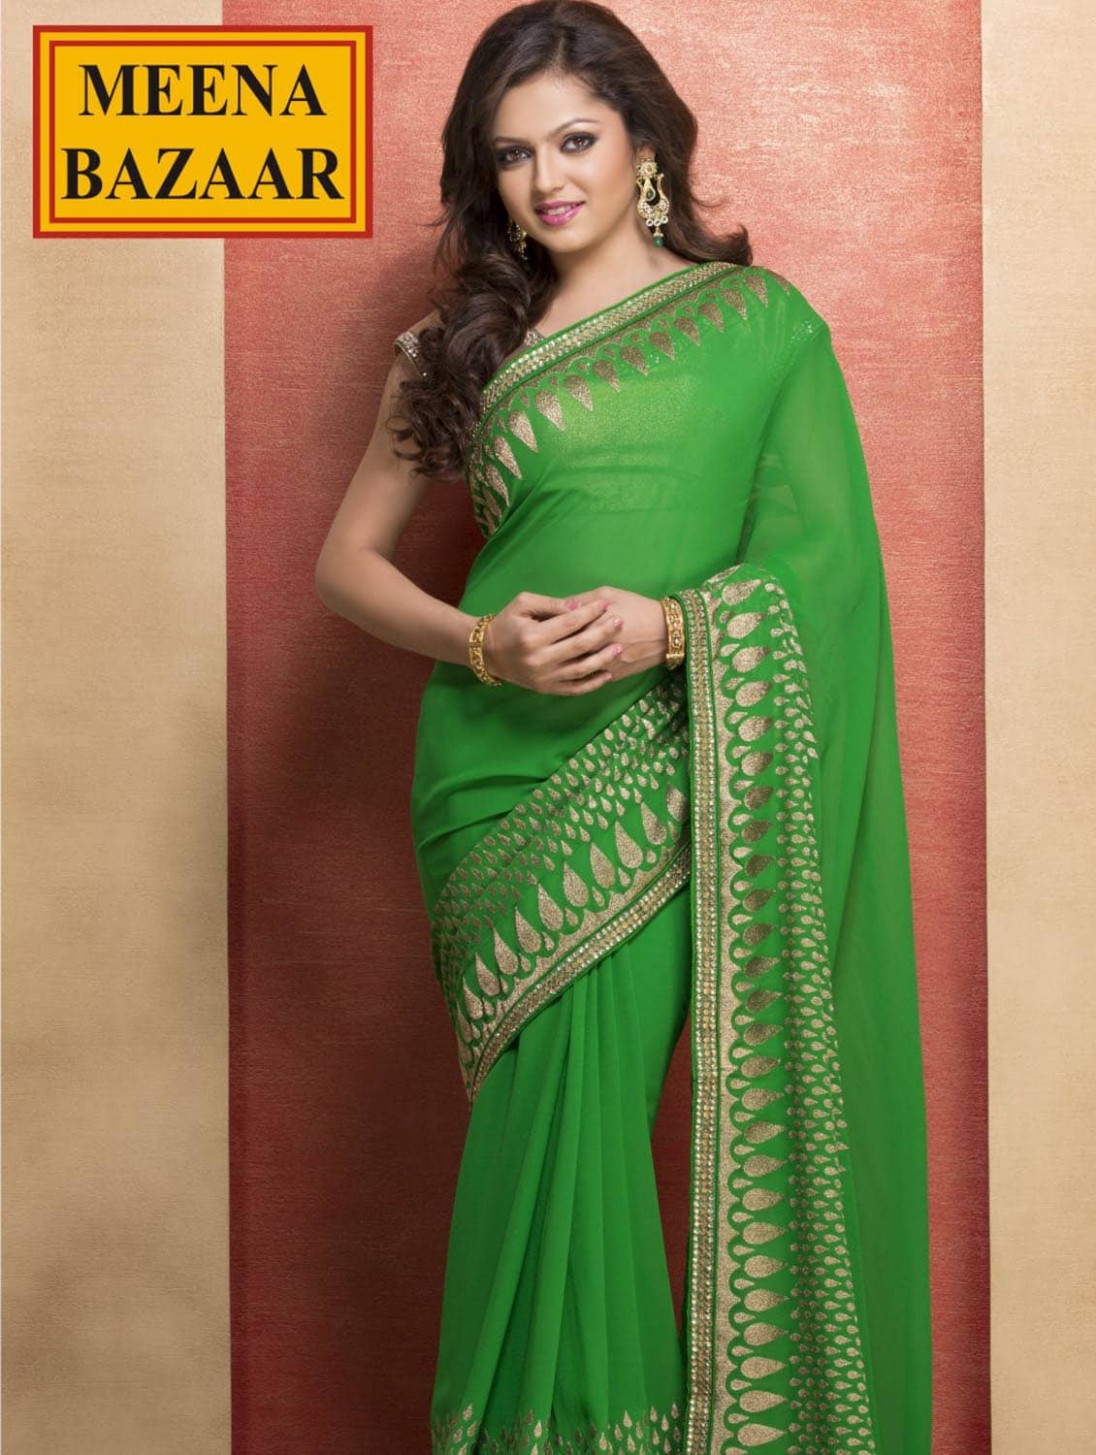 Where To Shop For Bridal Wear In Bangalore??